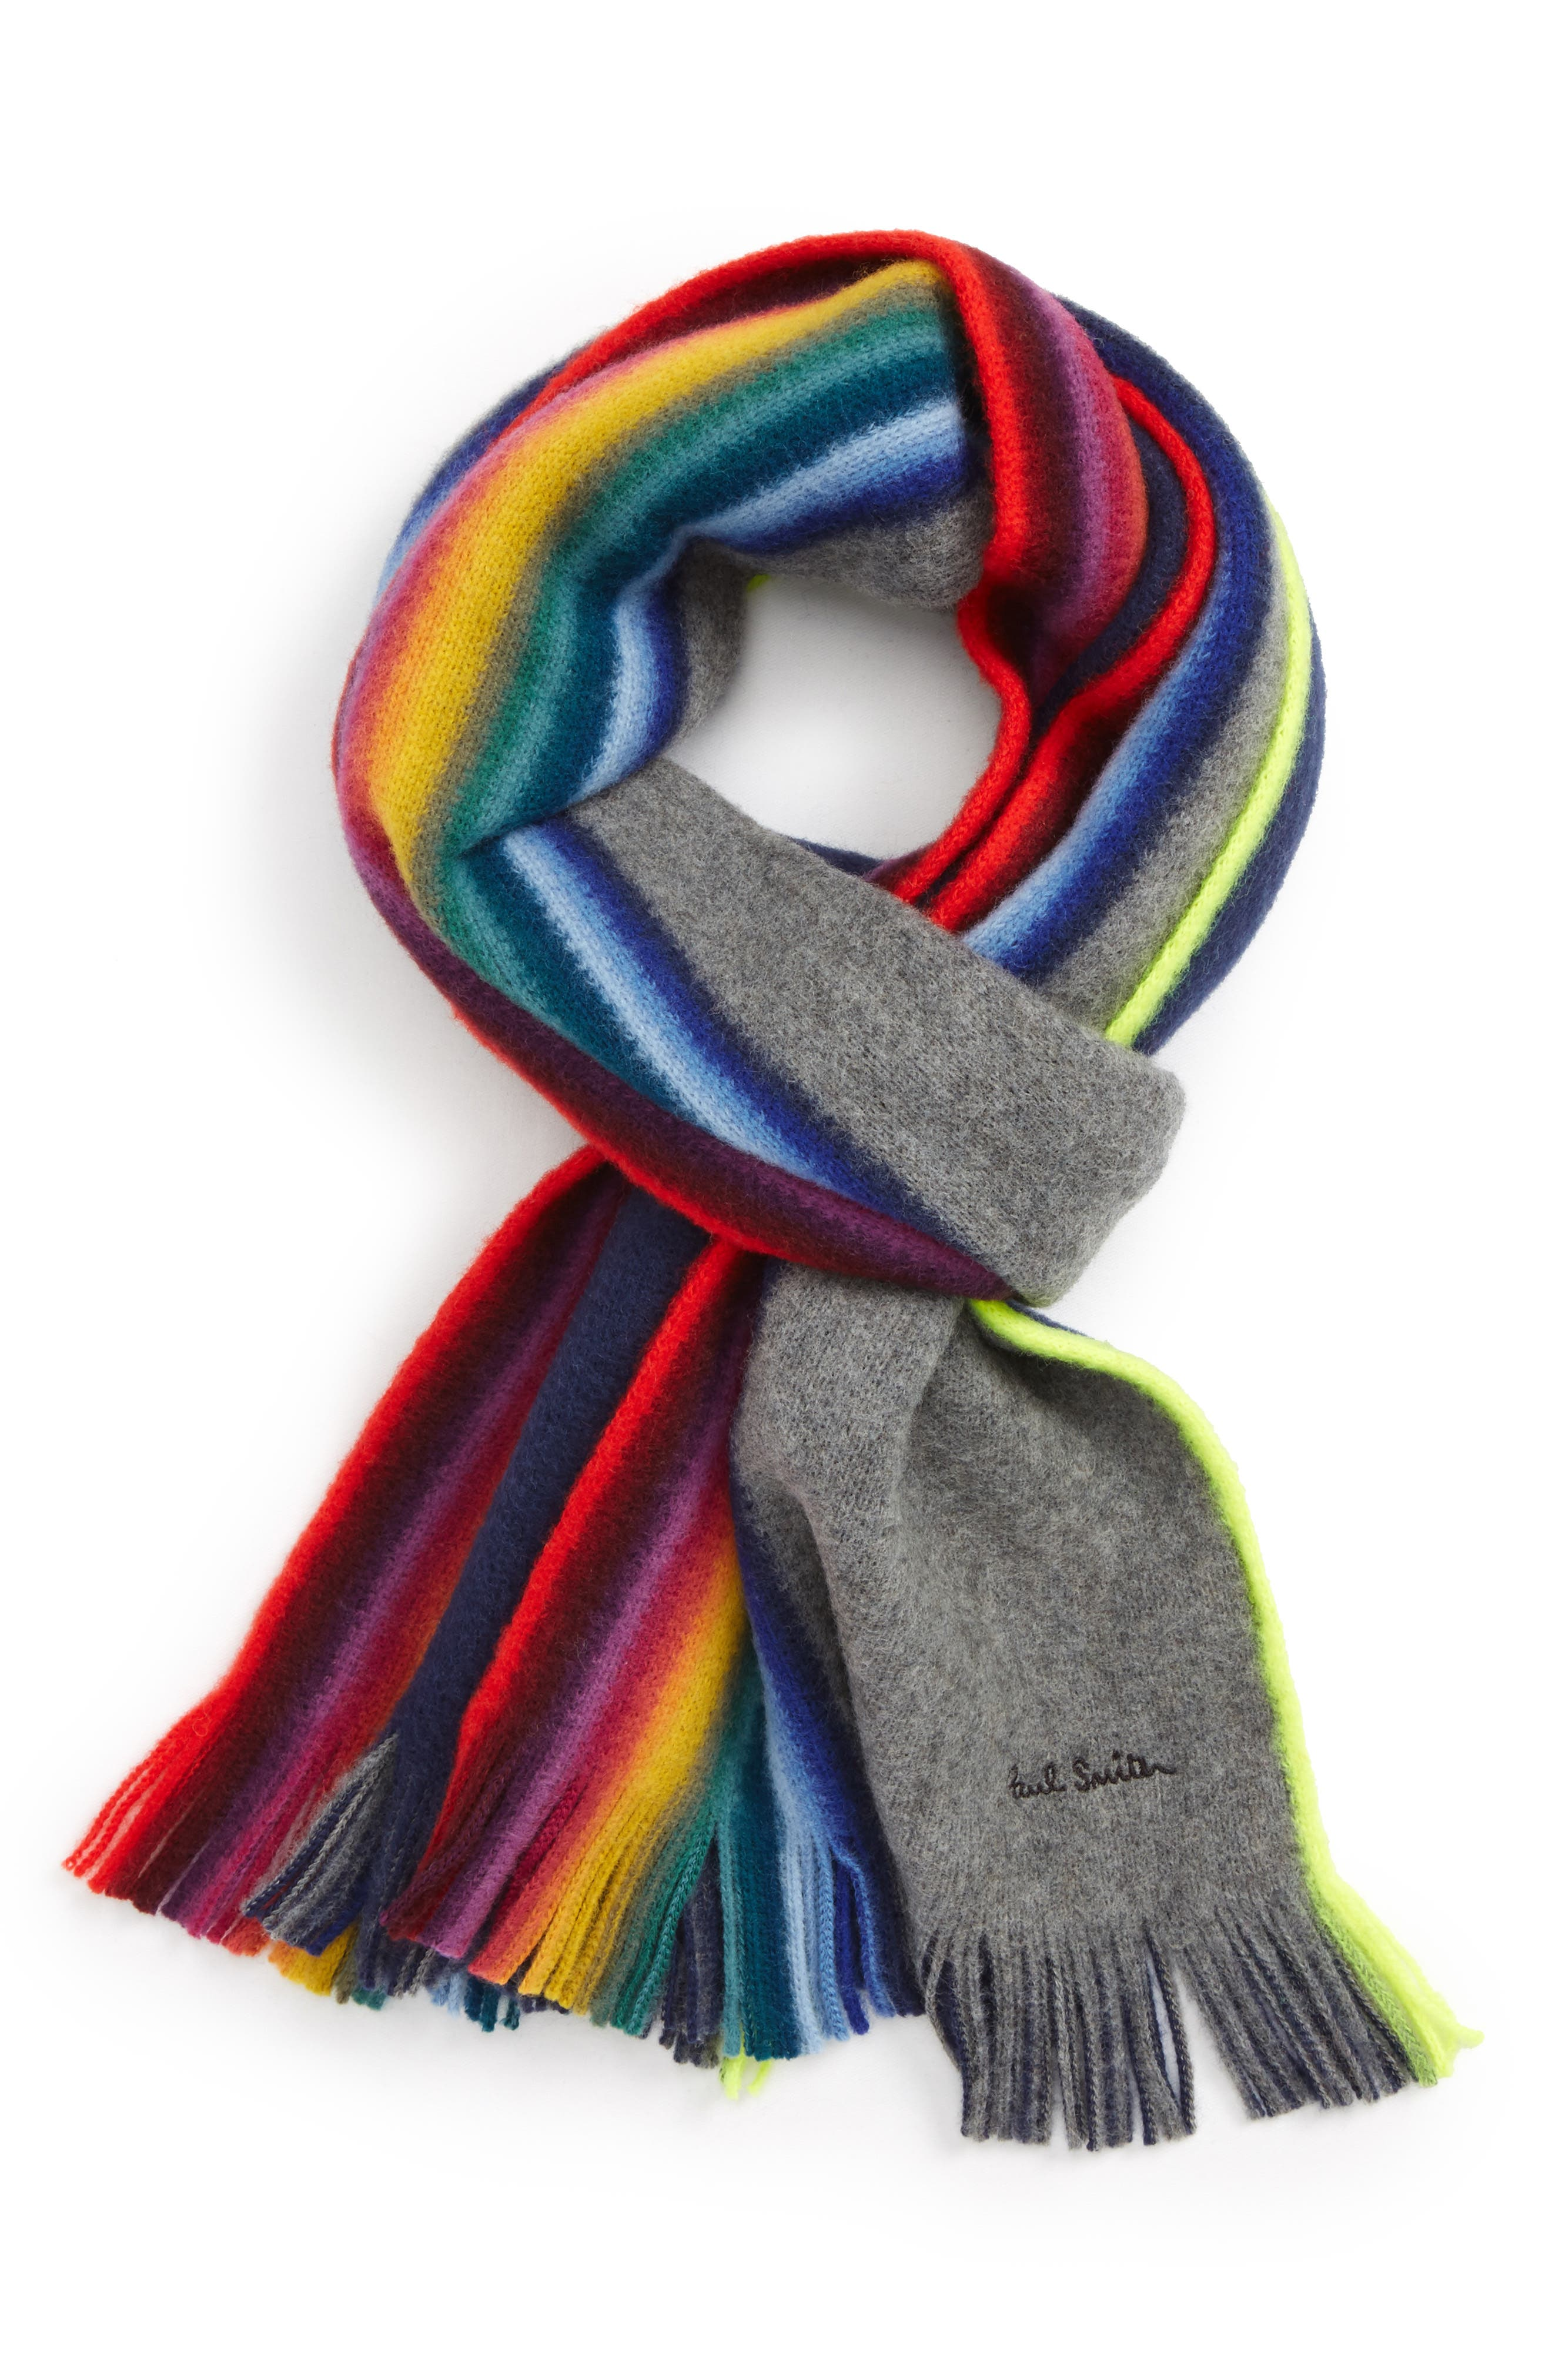 Paul Smith Rainbow Edge Wool Scarf